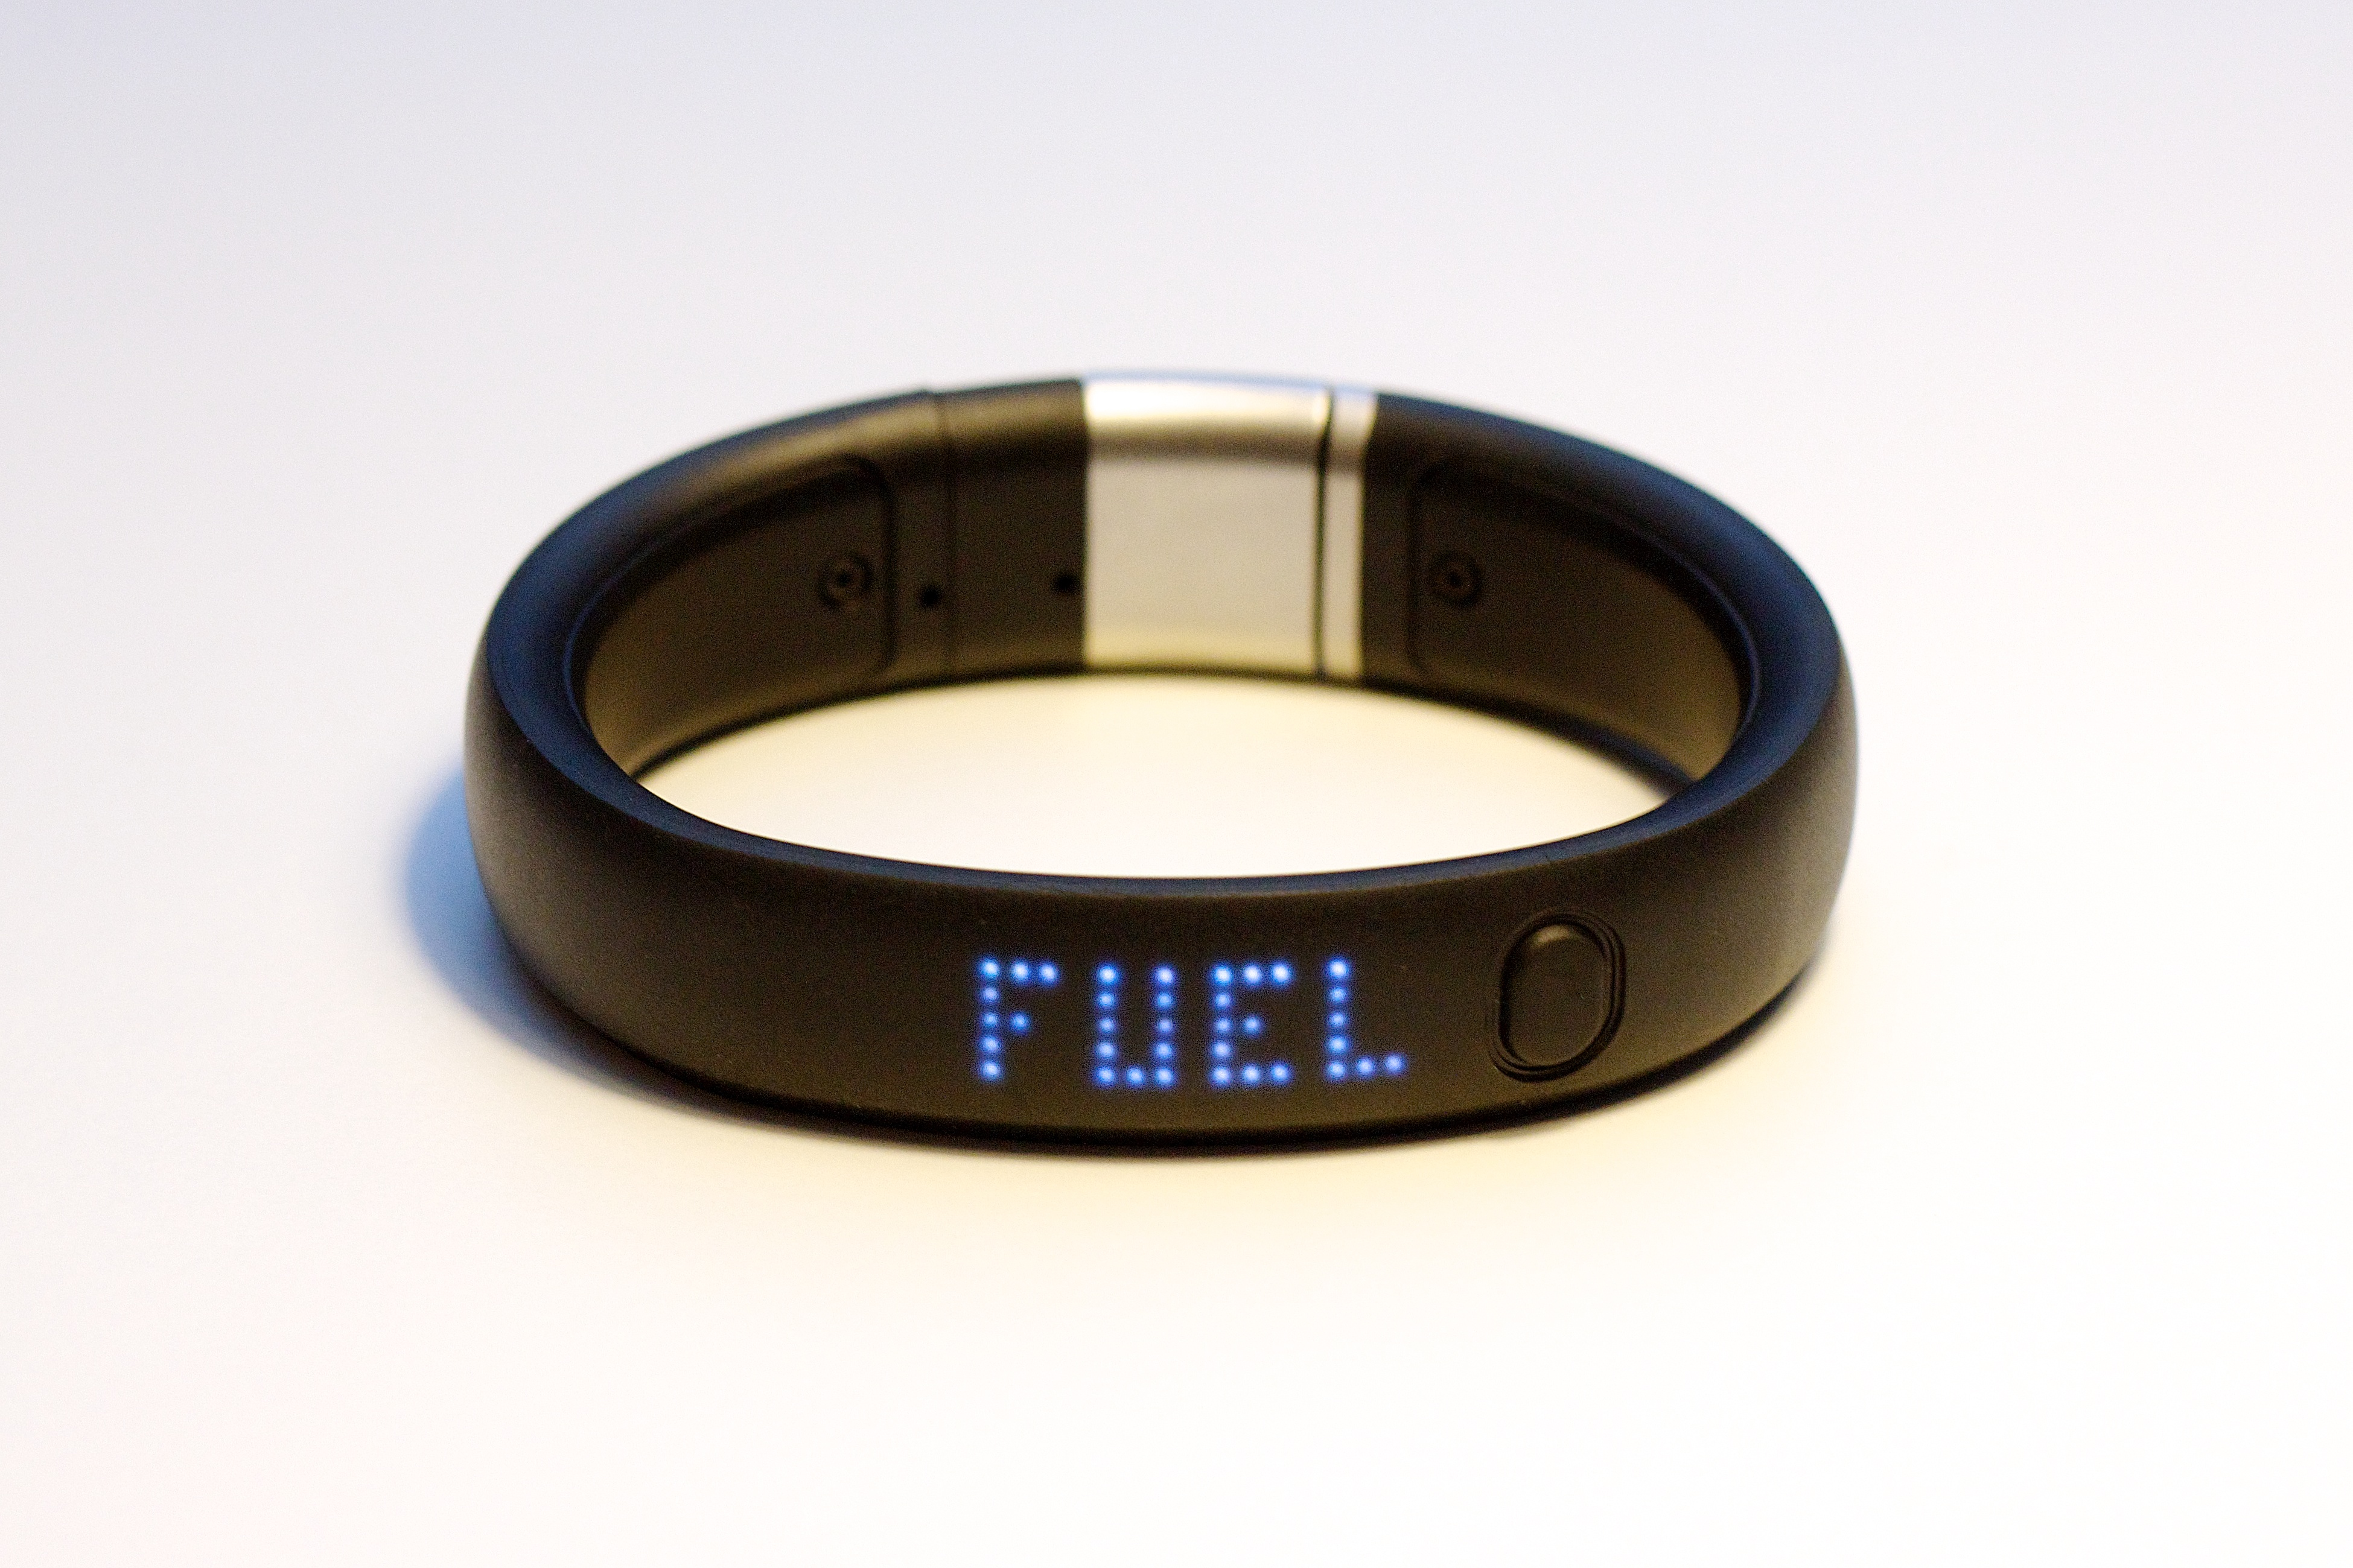 Image of Nike Fuel Band - Importance of Health Literacy on reducing Digital Divide